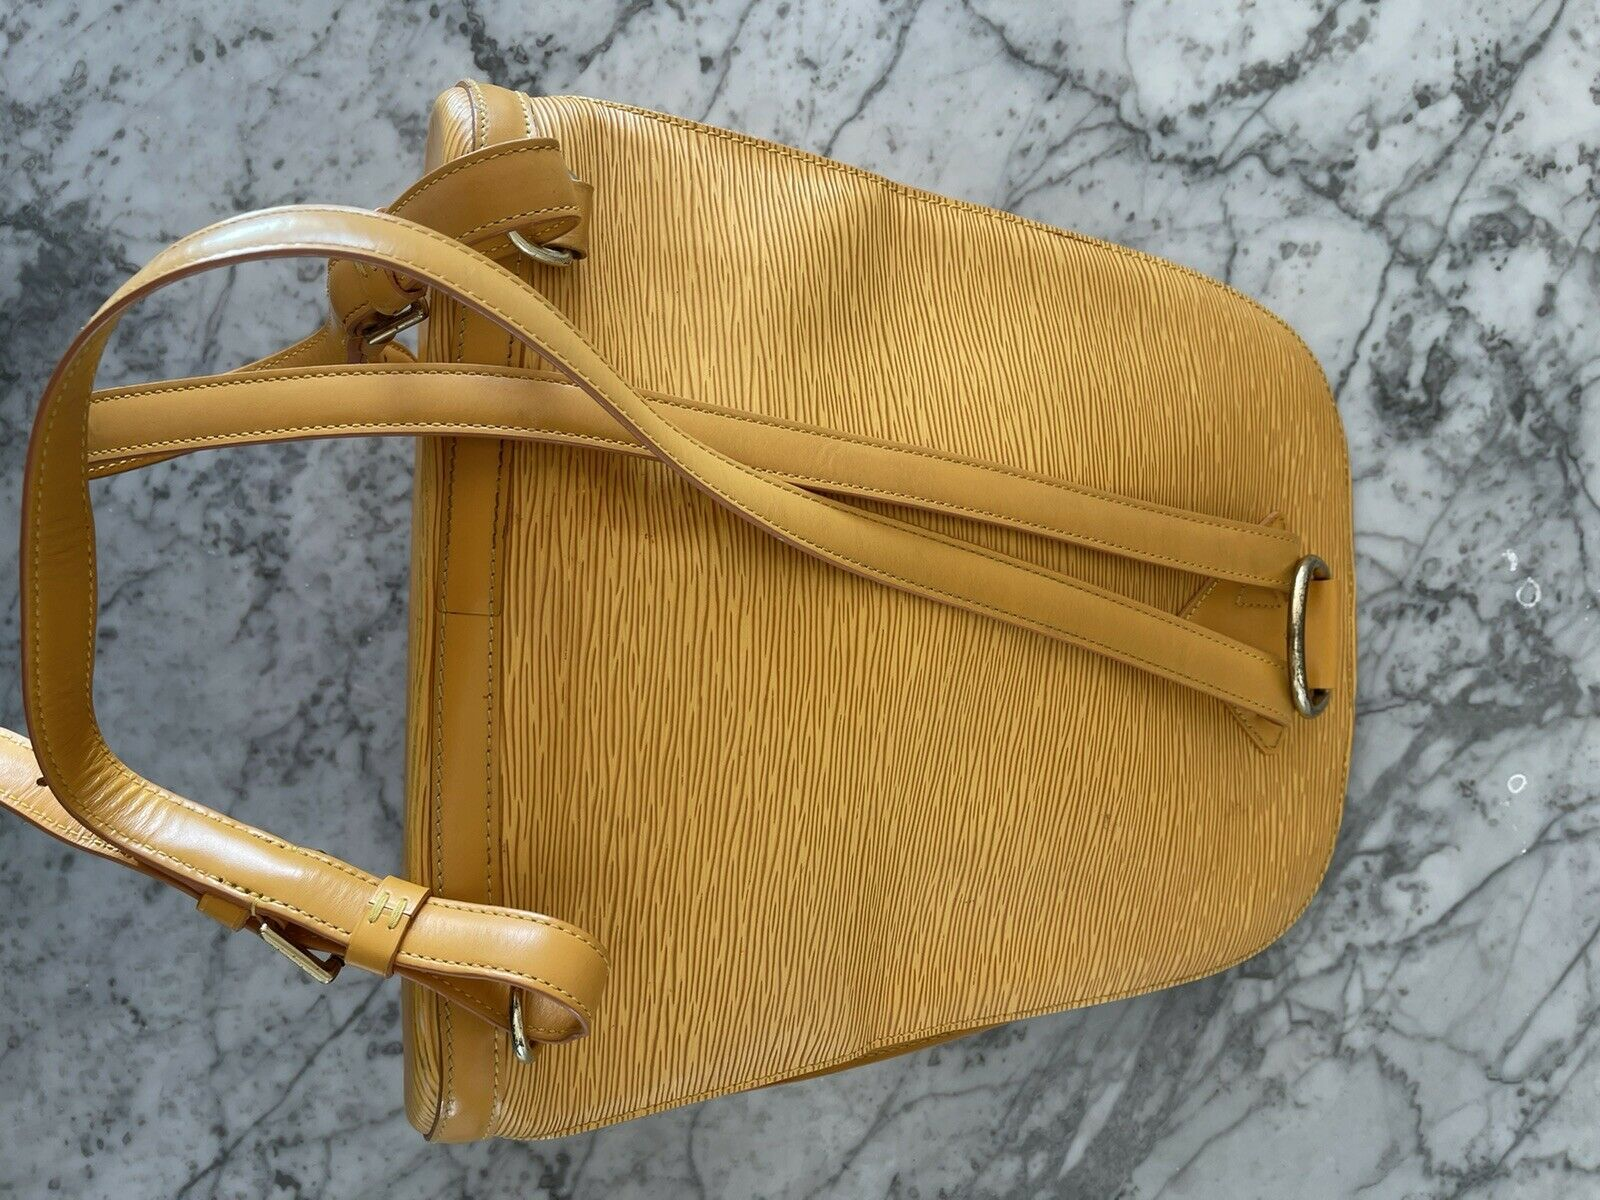 louis vuitton backpack - image 4